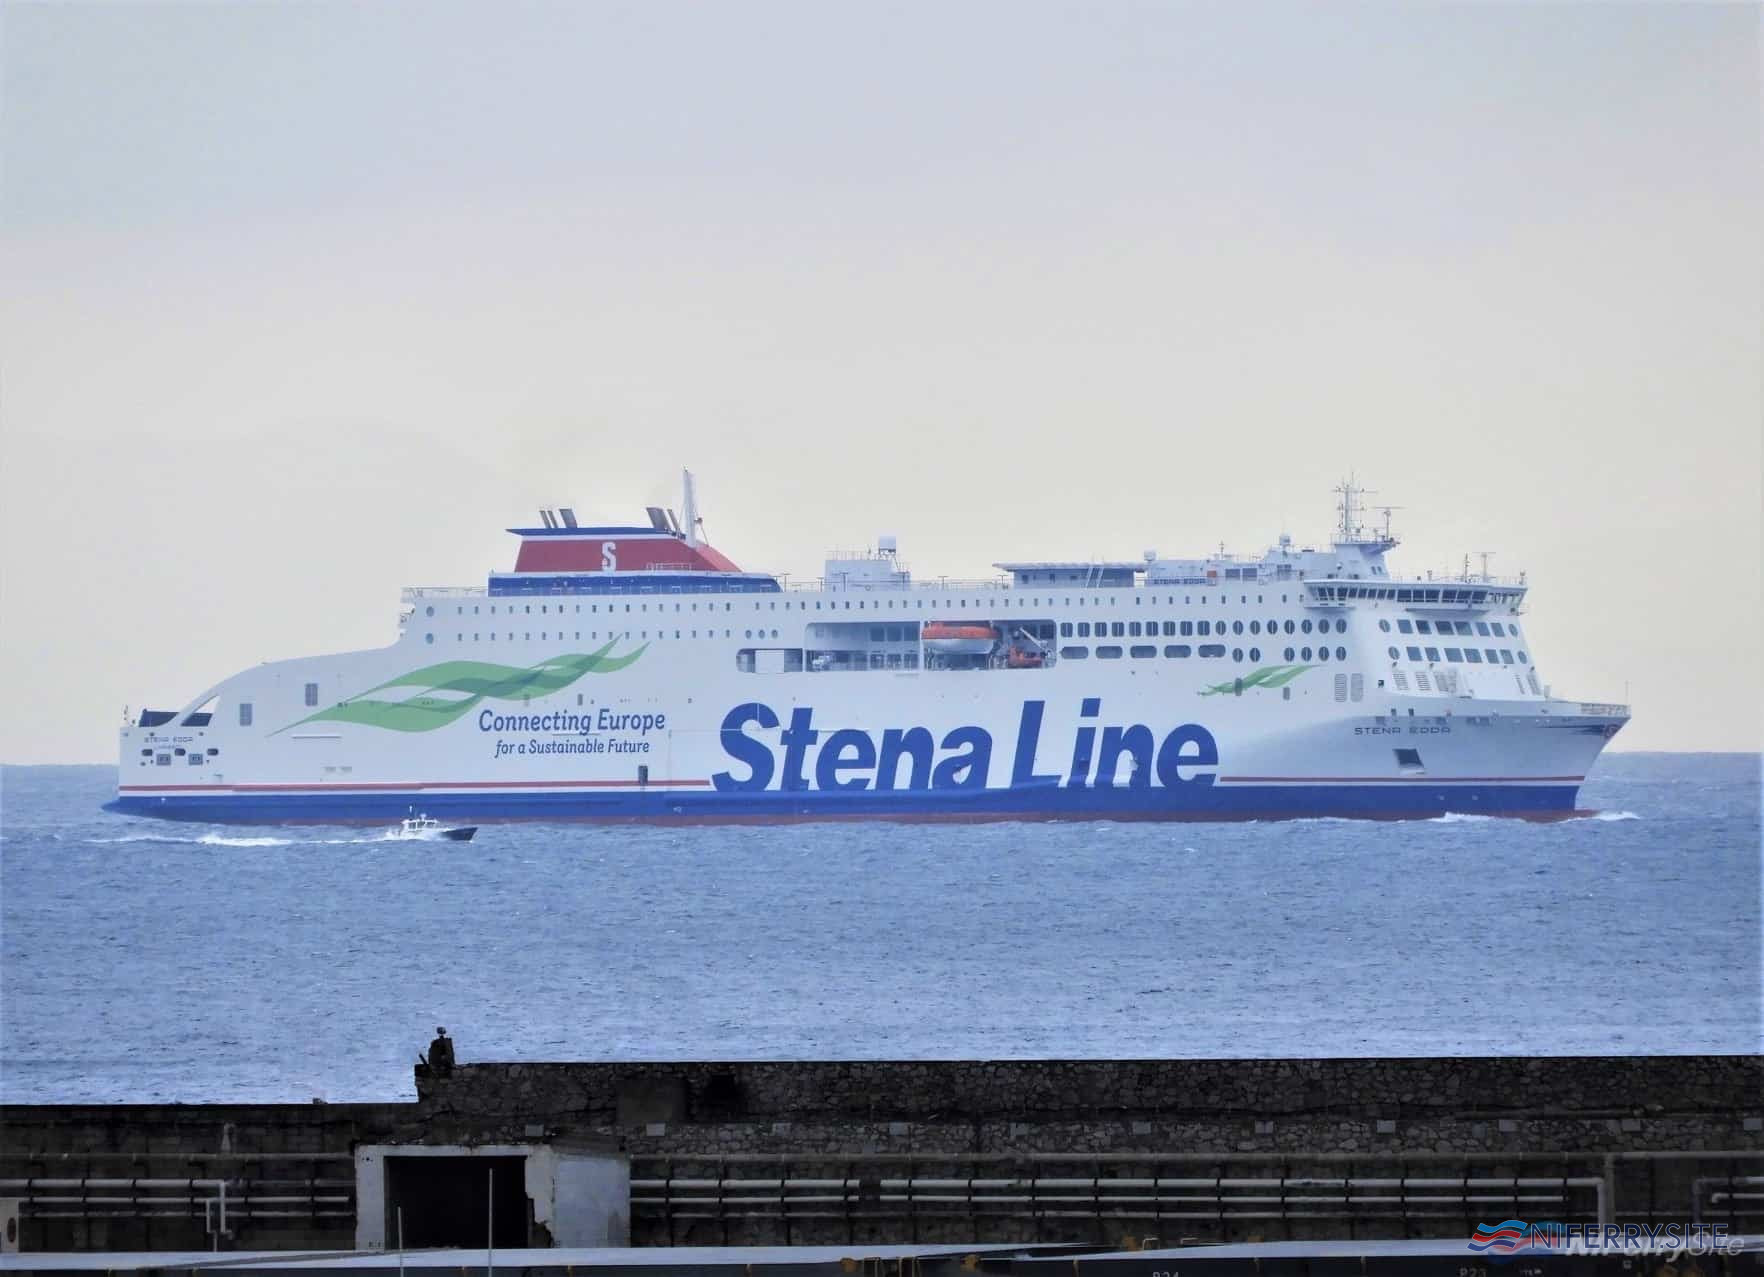 STENA EDDA in the Bay of Gibraltar ahead of her first arrival in Europe at Algeciras Anchorage, 20.02.2020. The stop was to take on bunkers and supplies prior to proceeding to the U.K. on the final leg of her 10,000+ mile journey. Copyright © Tony Davis.